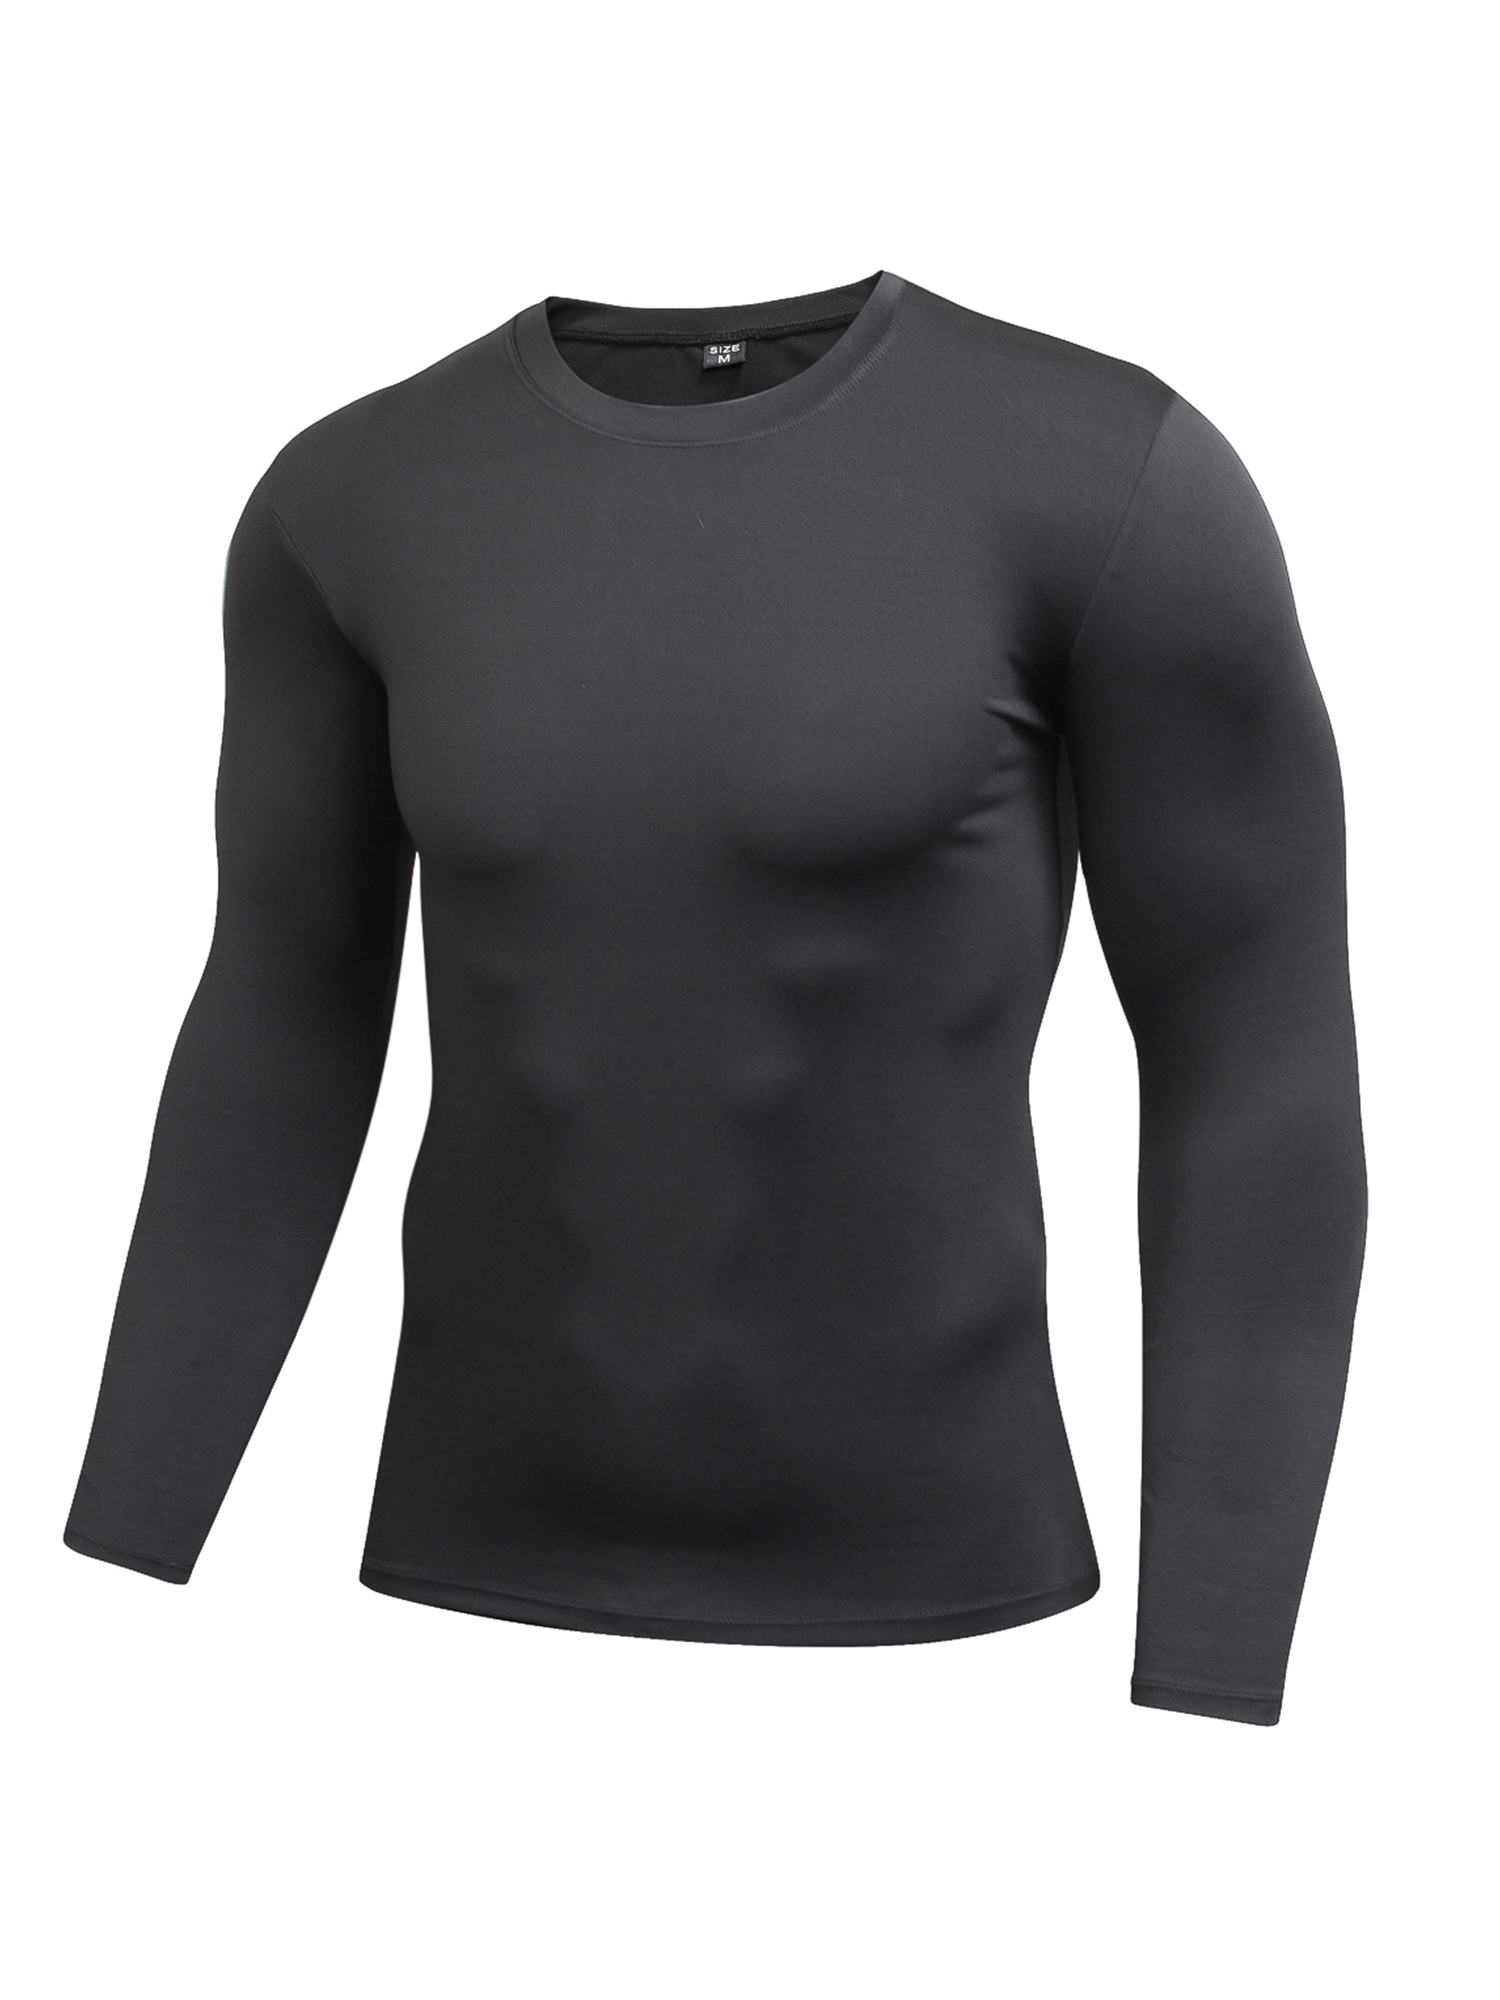 Details about  /Men/'s Compression Quick Dry Activewear Long Sleeve,Cycling Long Sleeve T-Shirt